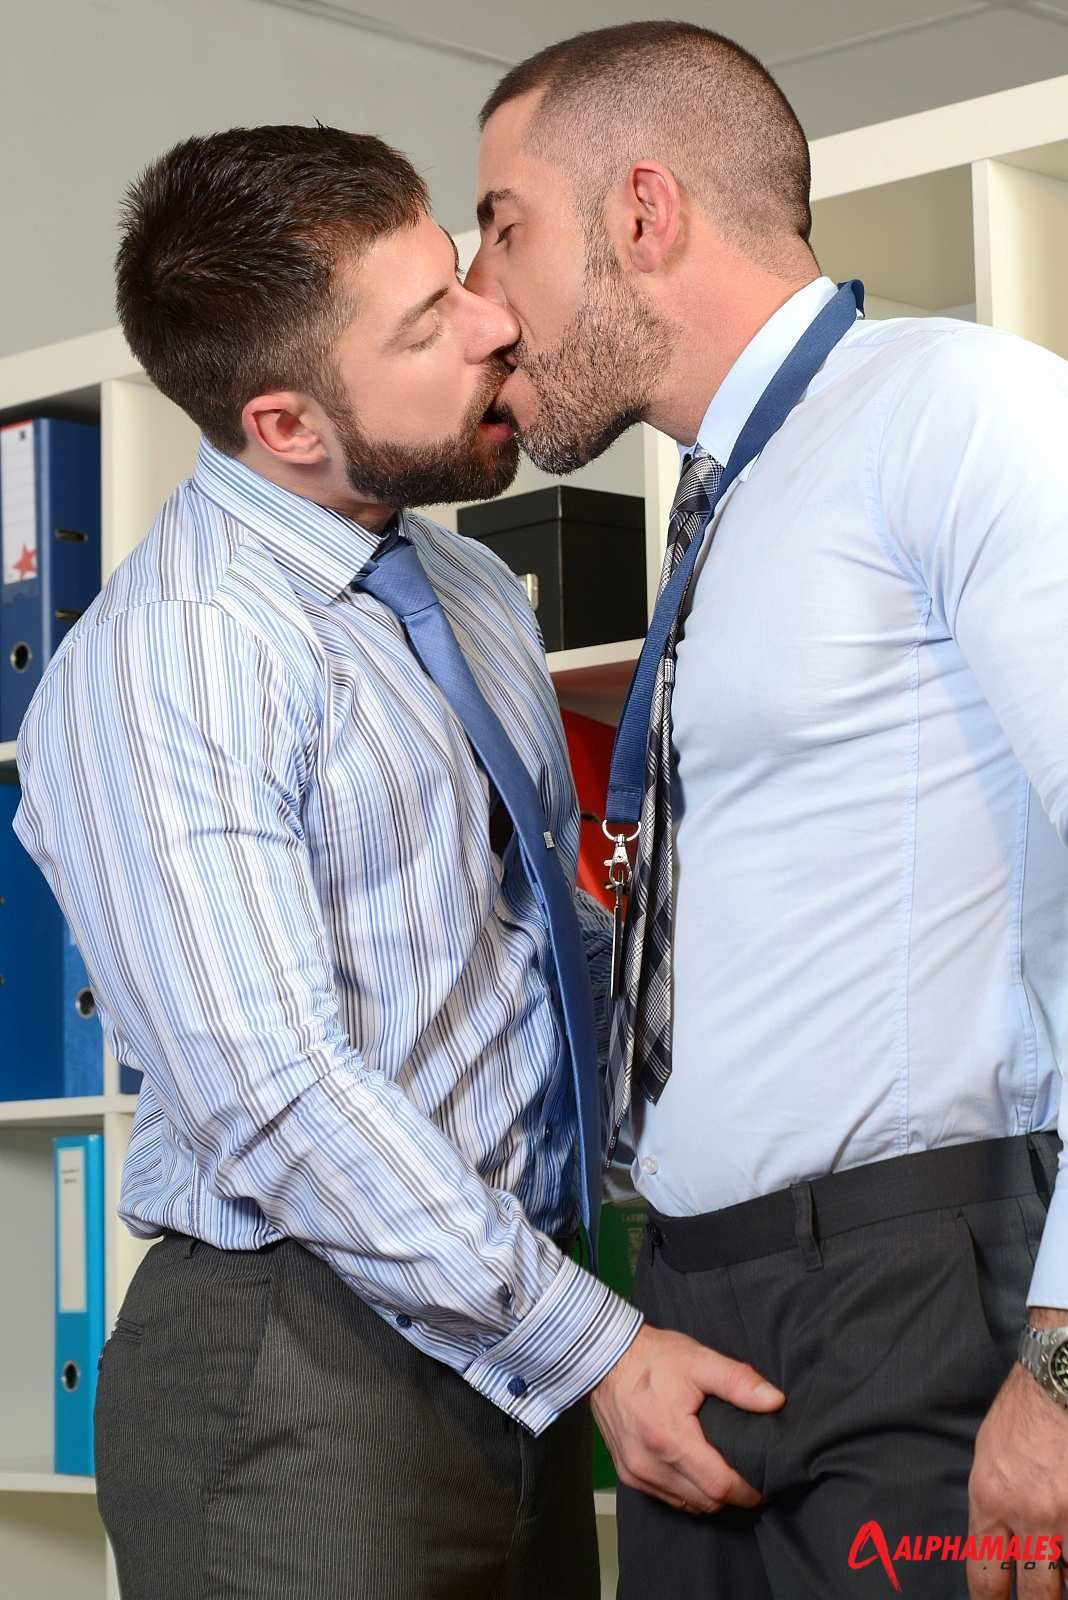 Mature gay office